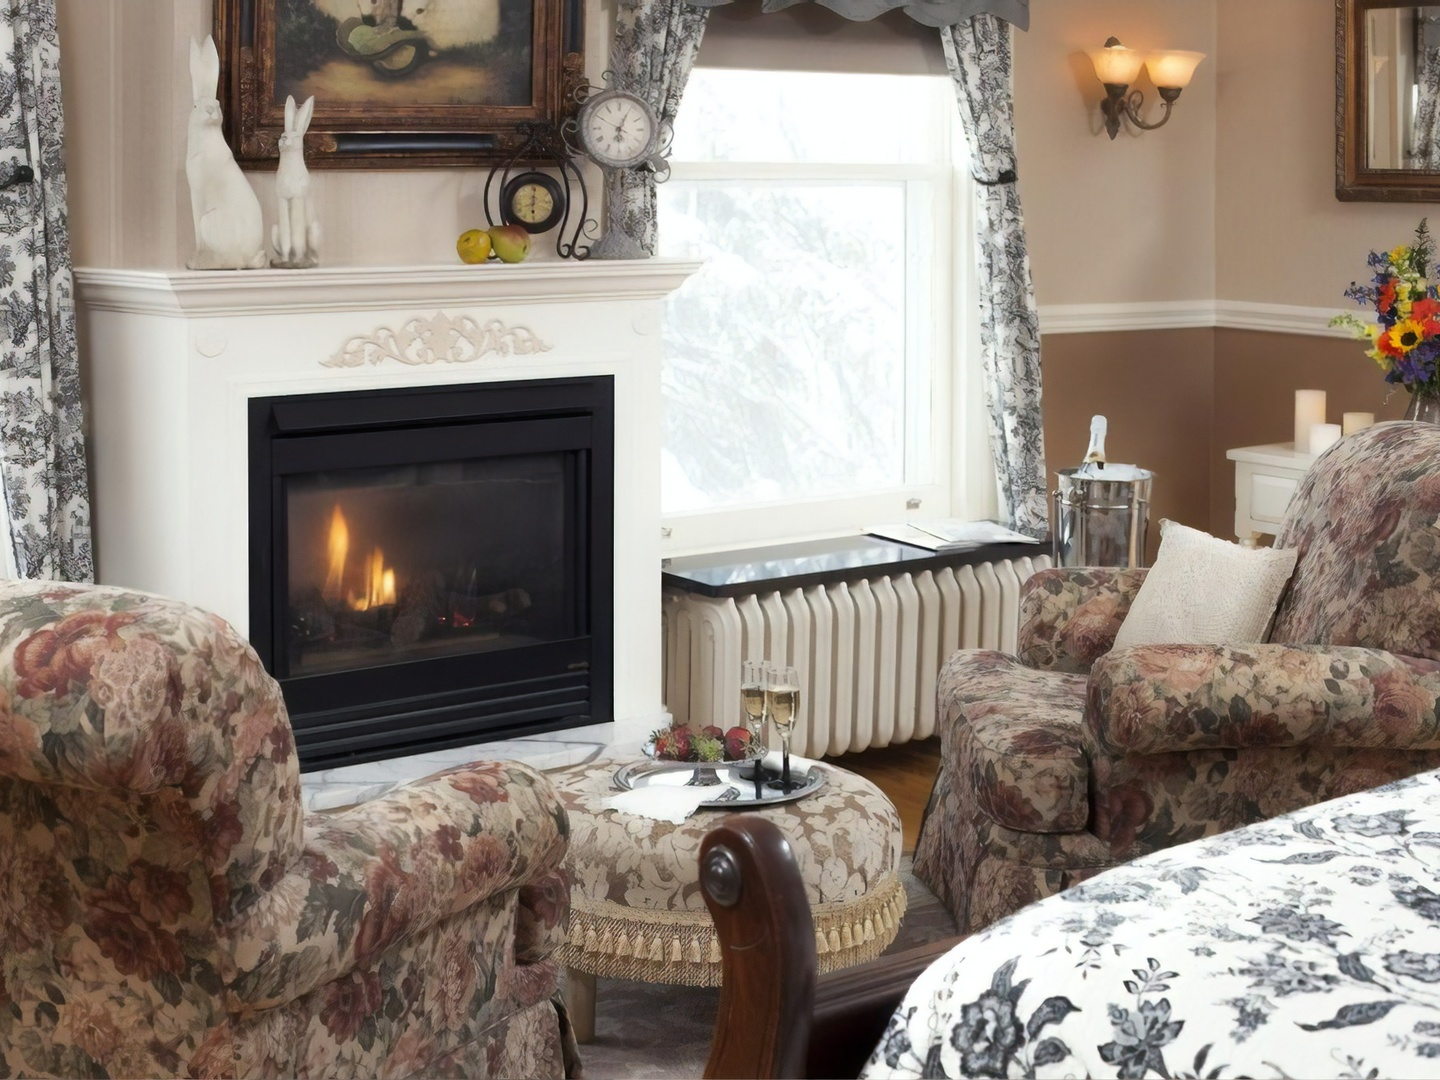 A fire place sitting in a living room with a fireplace at A G Thomson House Bed and Breakfast.